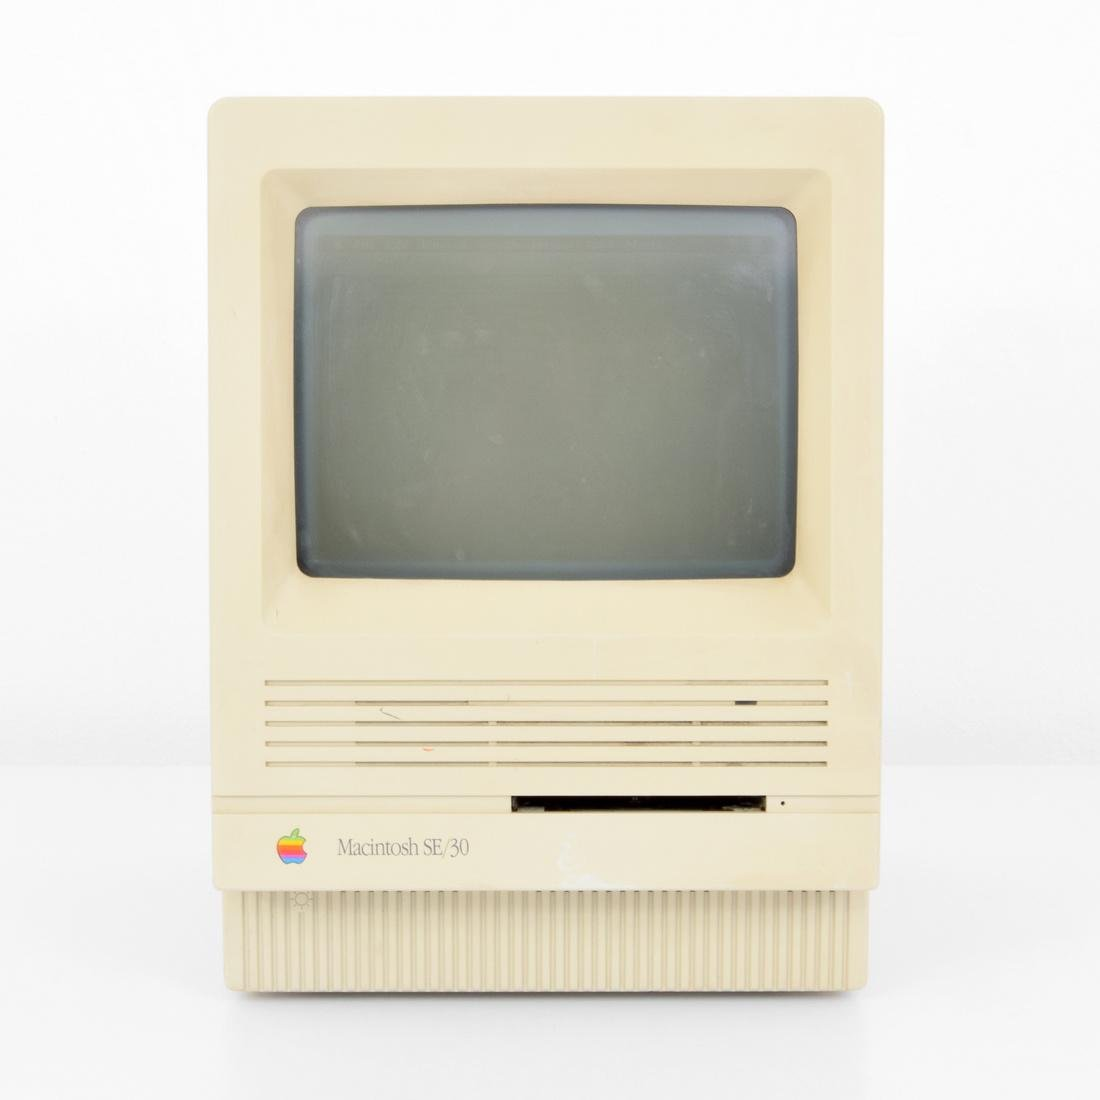 Apple Macintosh SE/30 Computer & Keyboard - 6